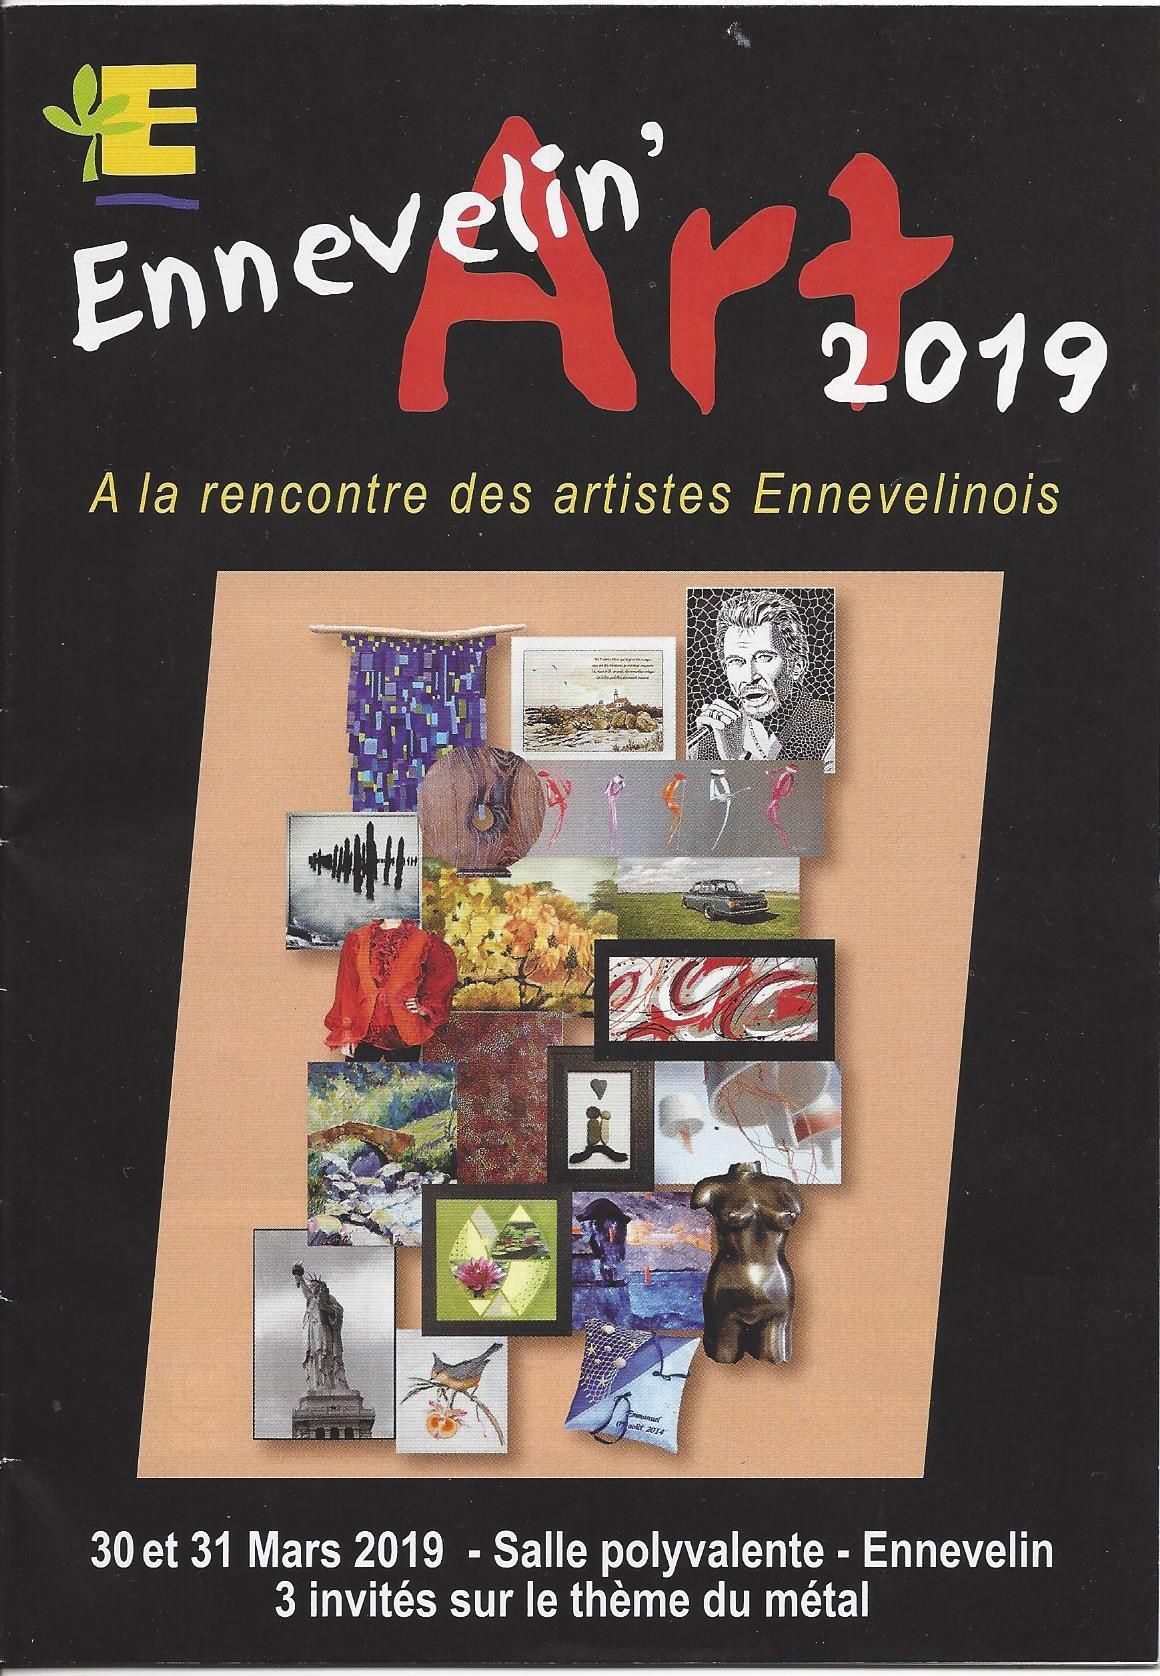 ENNEVELIN'ART 2019